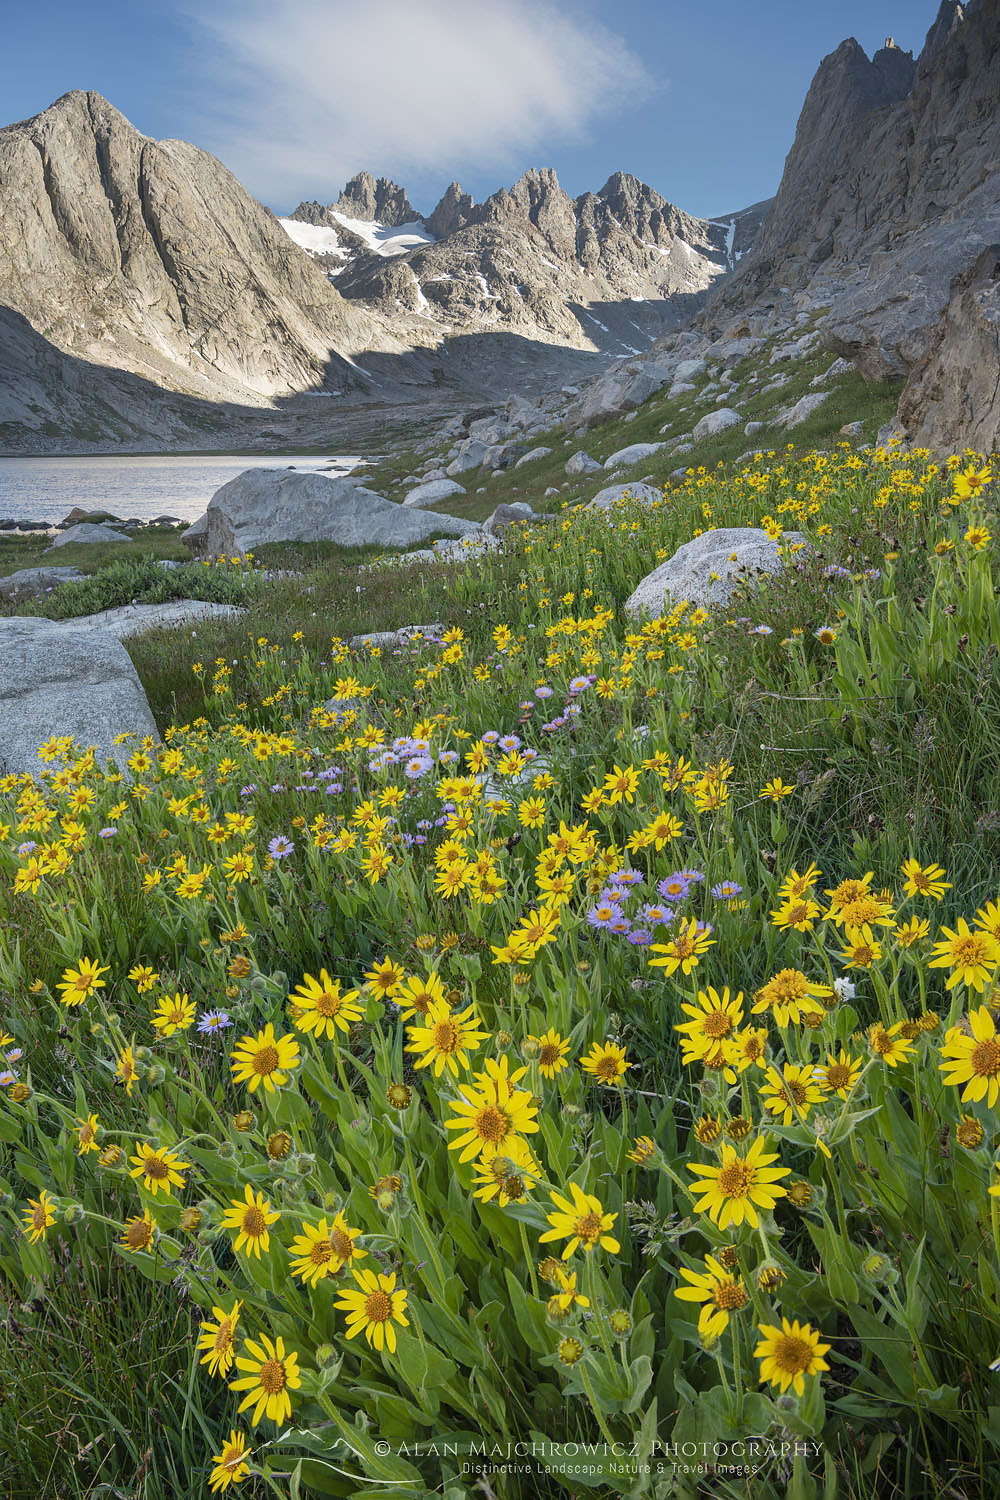 Field of Narrowleaf Arnica (Arnica angustifolia) Titcomb Basin, Bridger Wilderness, Wind River Range Wyoming